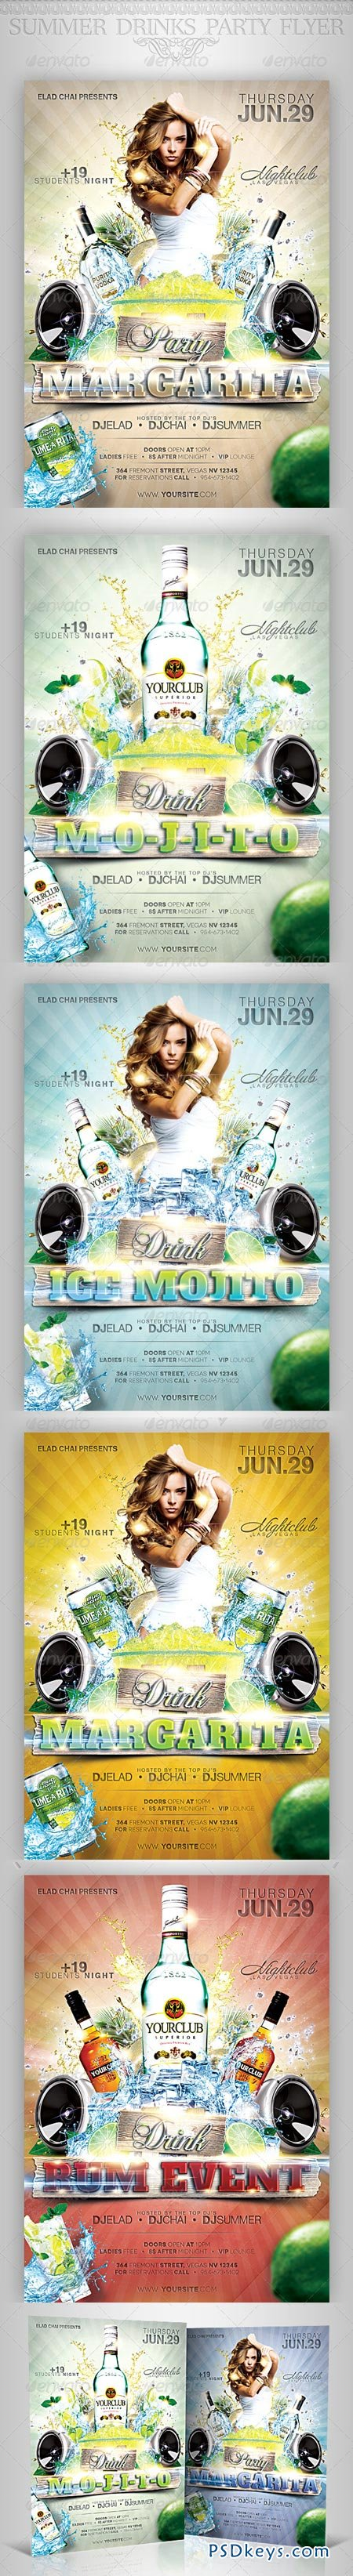 Summer Drinks Event Party Flyer 2573508